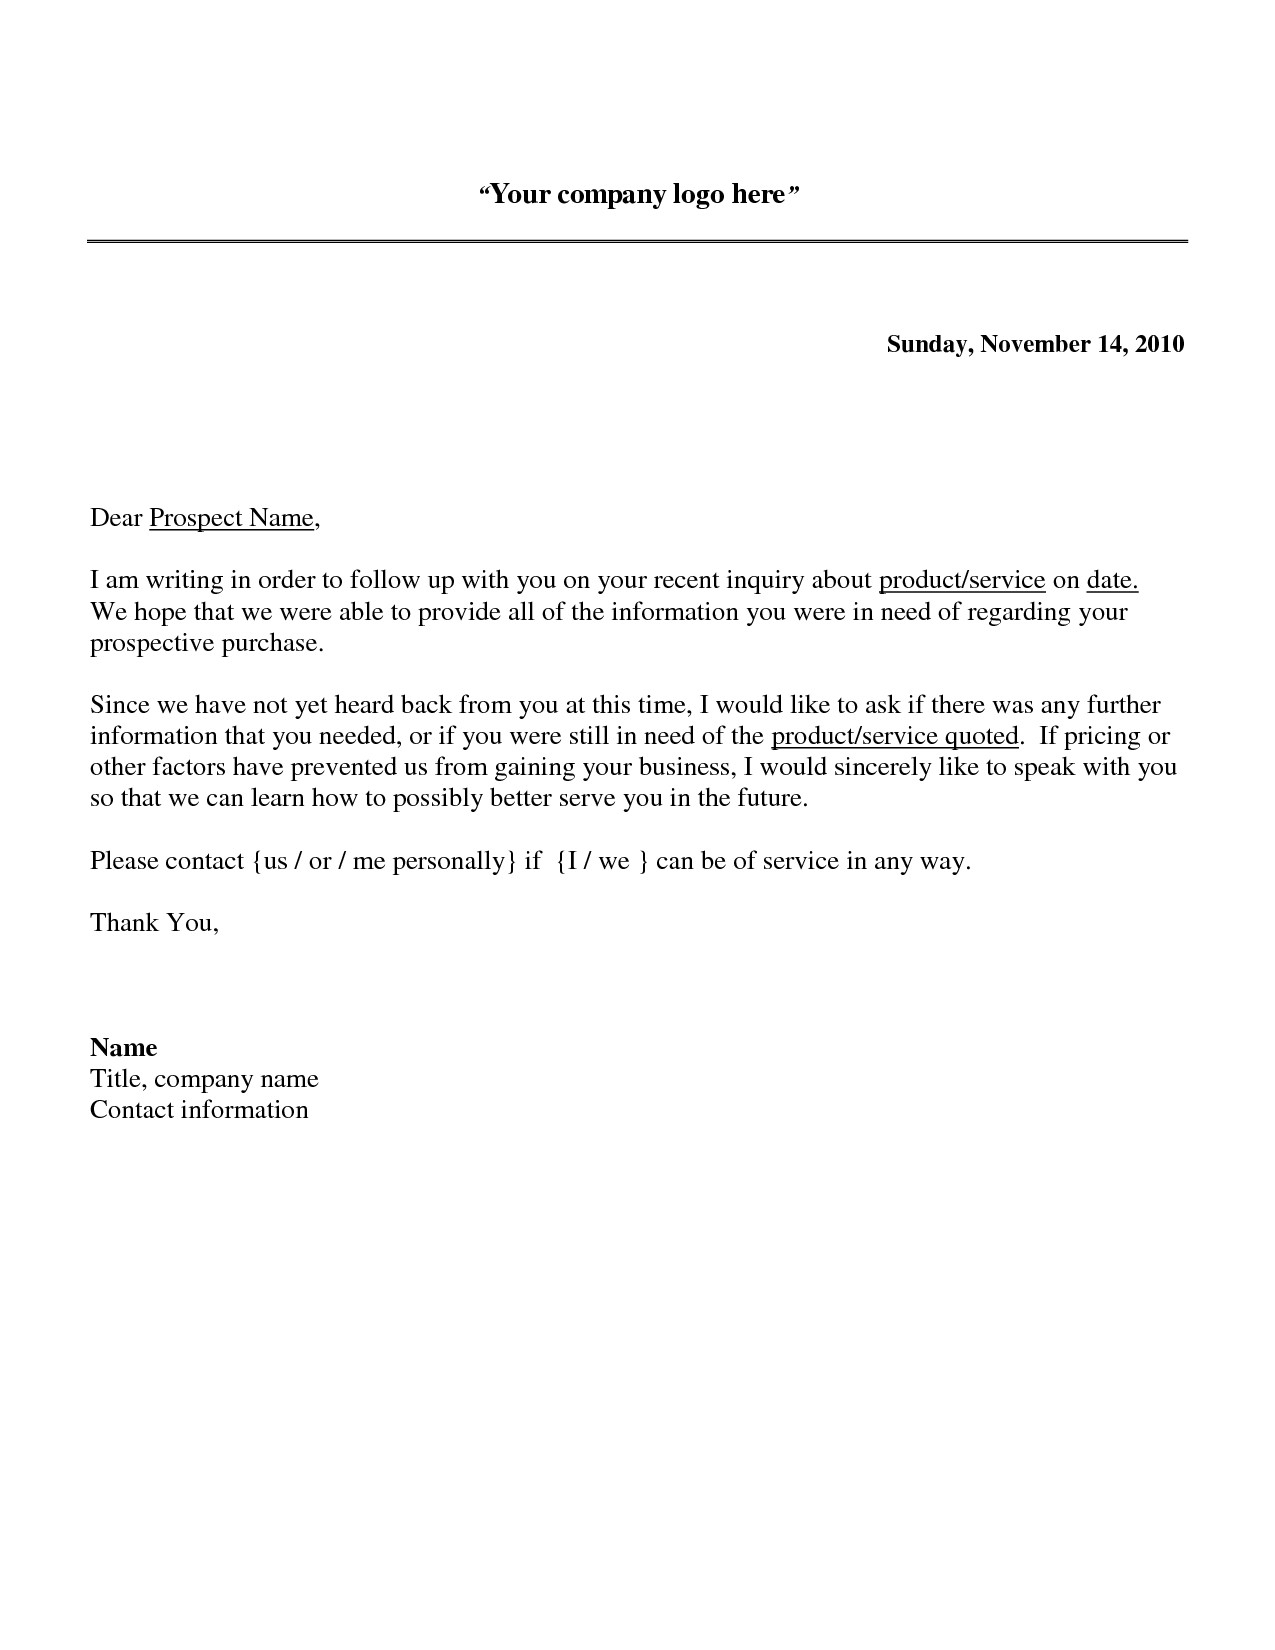 Samples Of Cover Letter  Manager Cover Letter Template Samples Letter Cover Templates